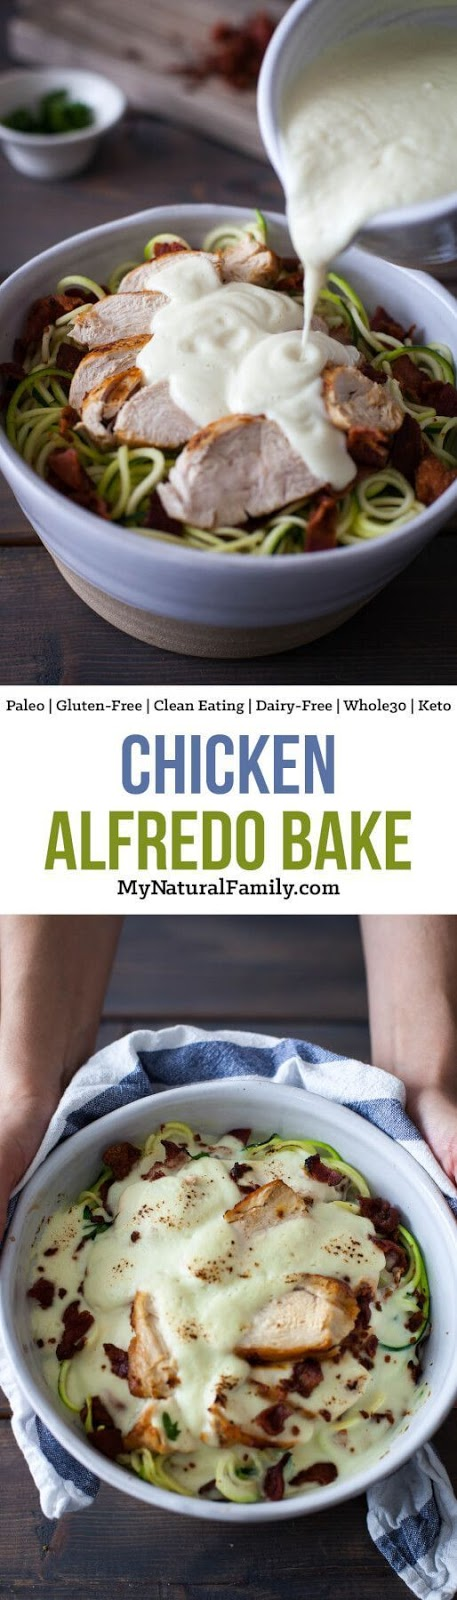 CHICKEN ALFREDO BAKE RECIPE {PALEO, CLEAN EATING, GLUTEN-FREE, DAIRY-FREE, WHOLE30}